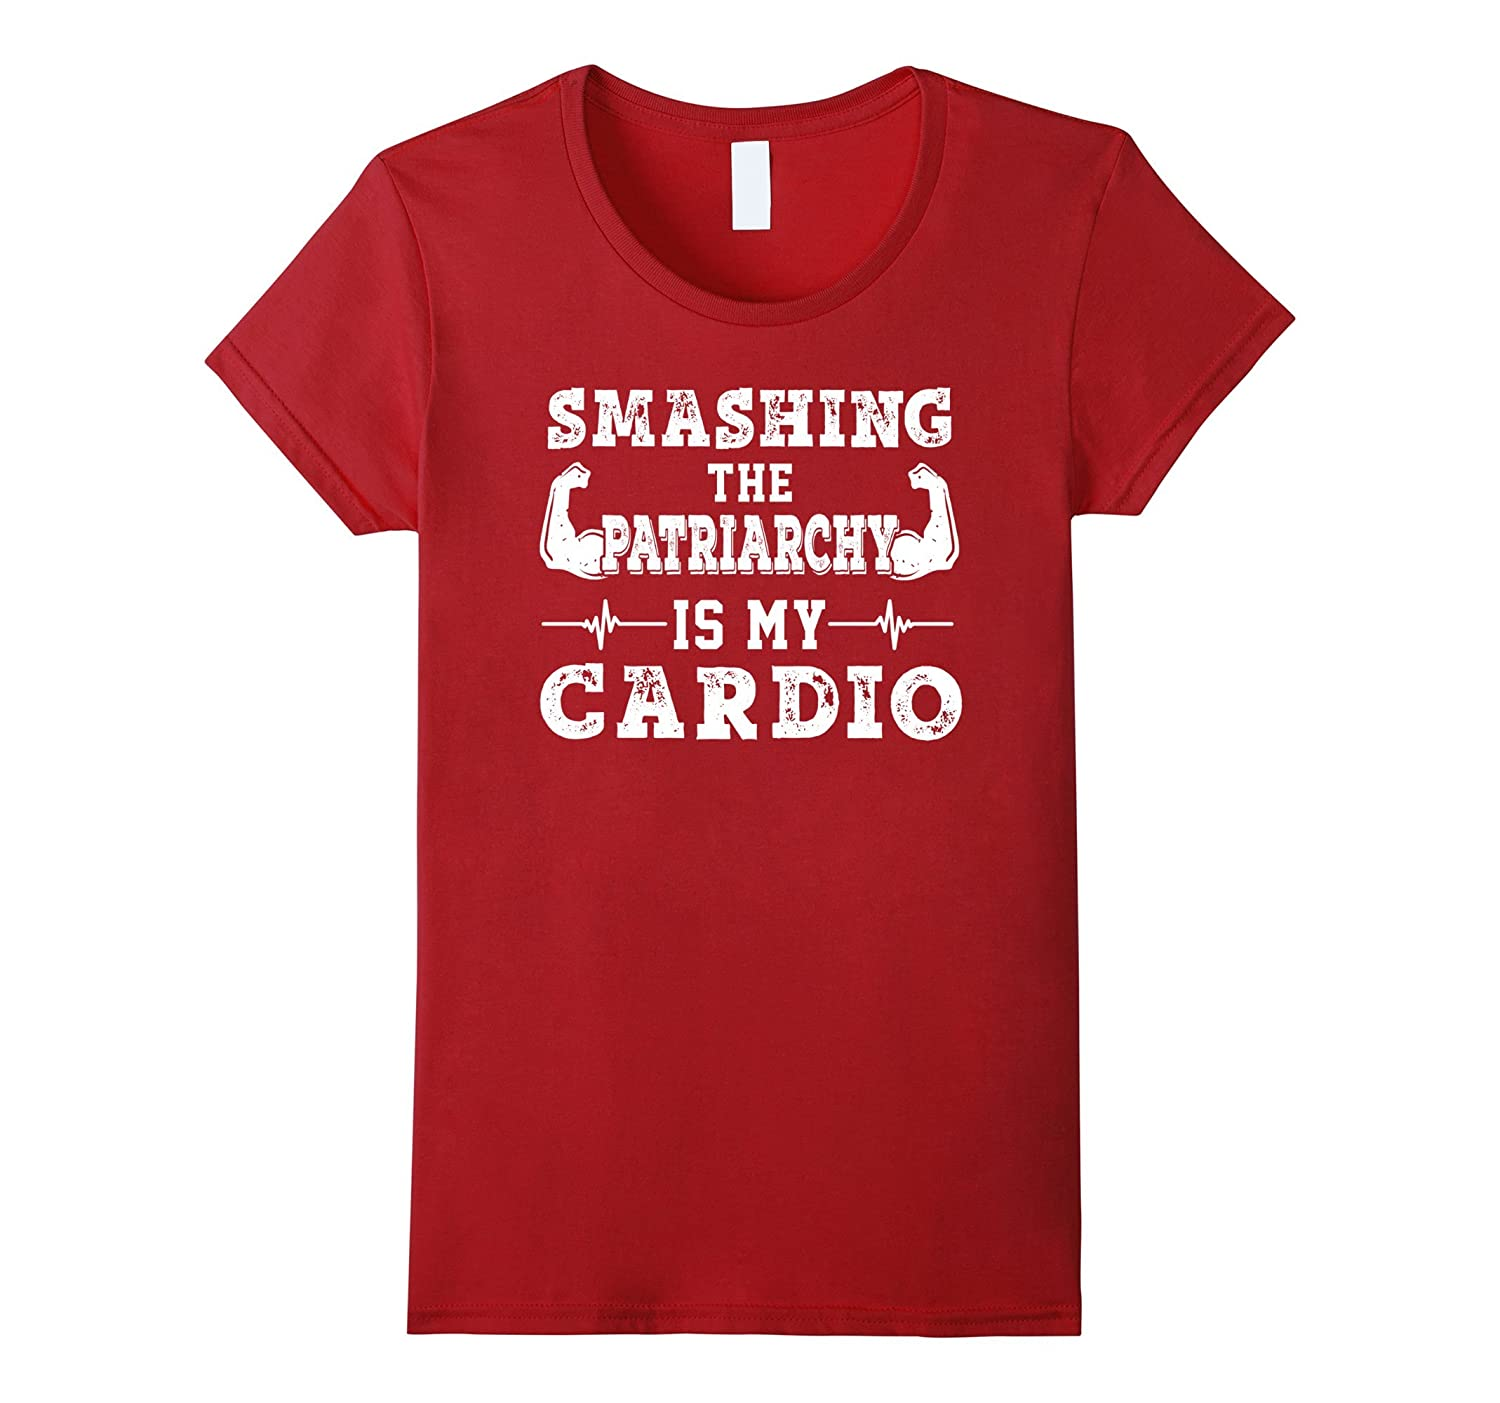 Smashing The Patriarchy Is My Cardio Feminist T Shirt